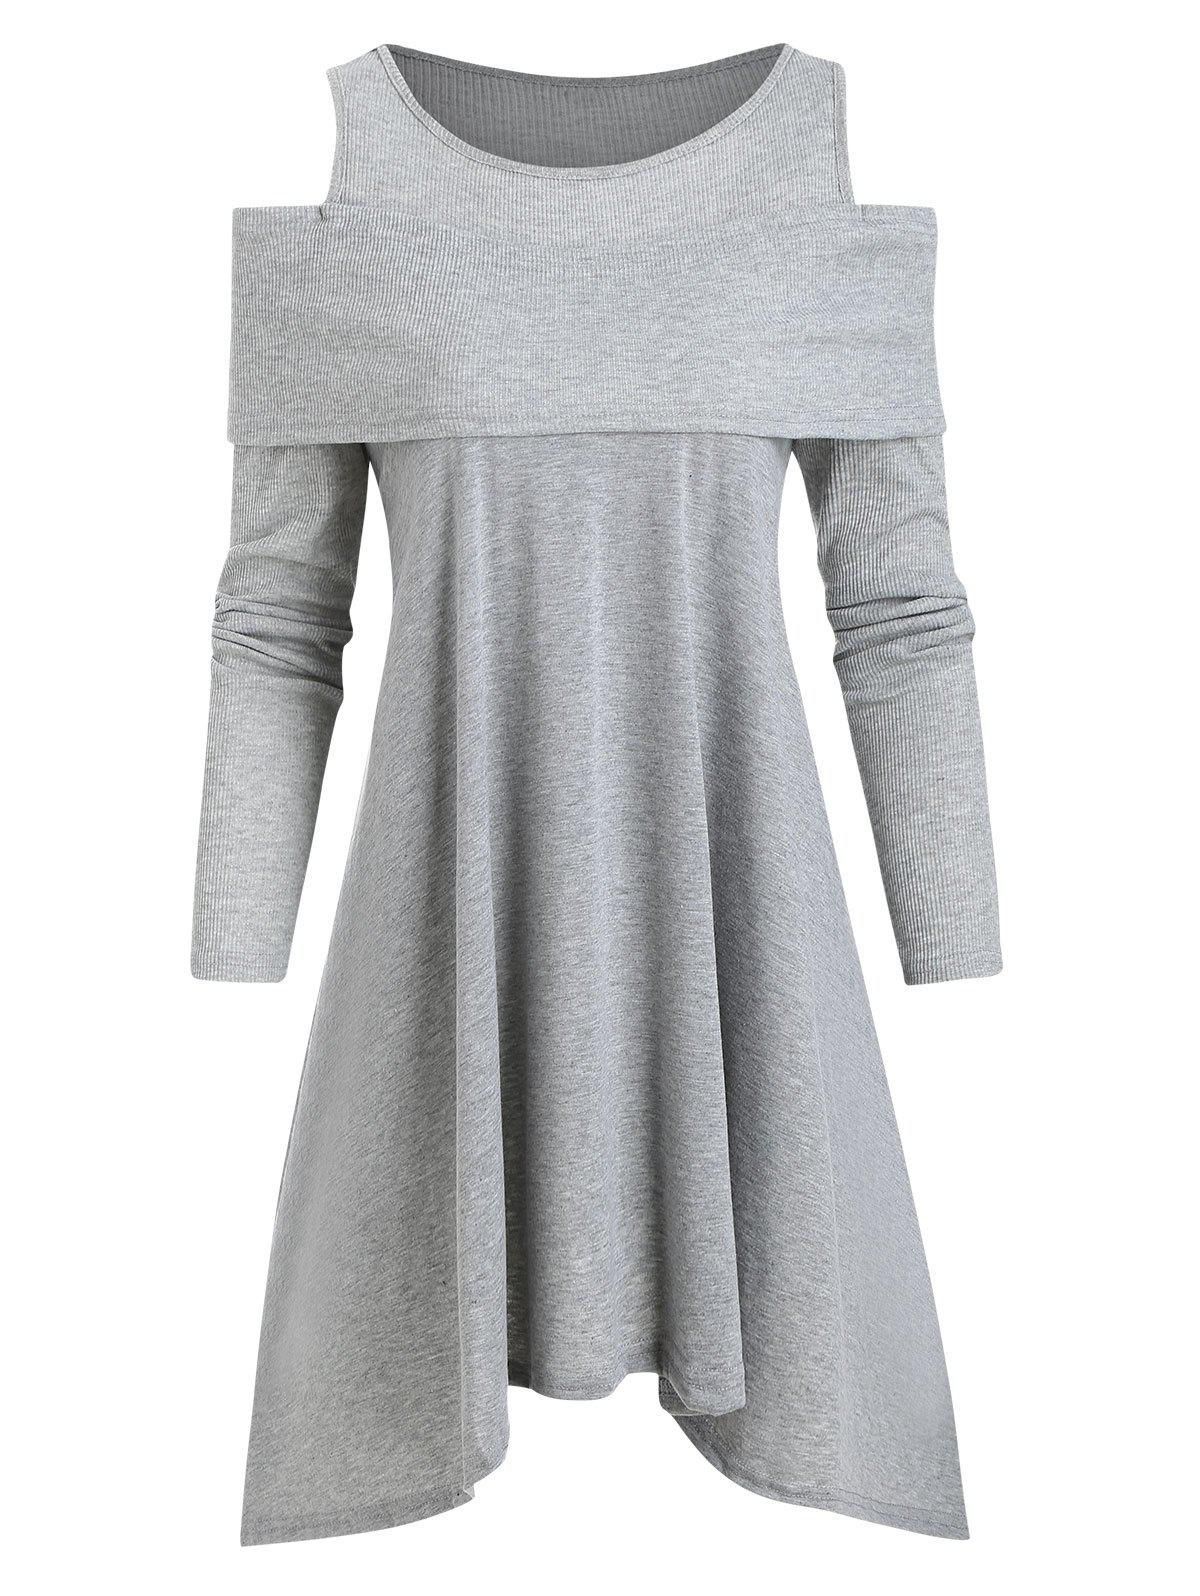 Ribbed Panel Jersey Cold Shoulder Asymmetrical Tunic Top - GRAY XL